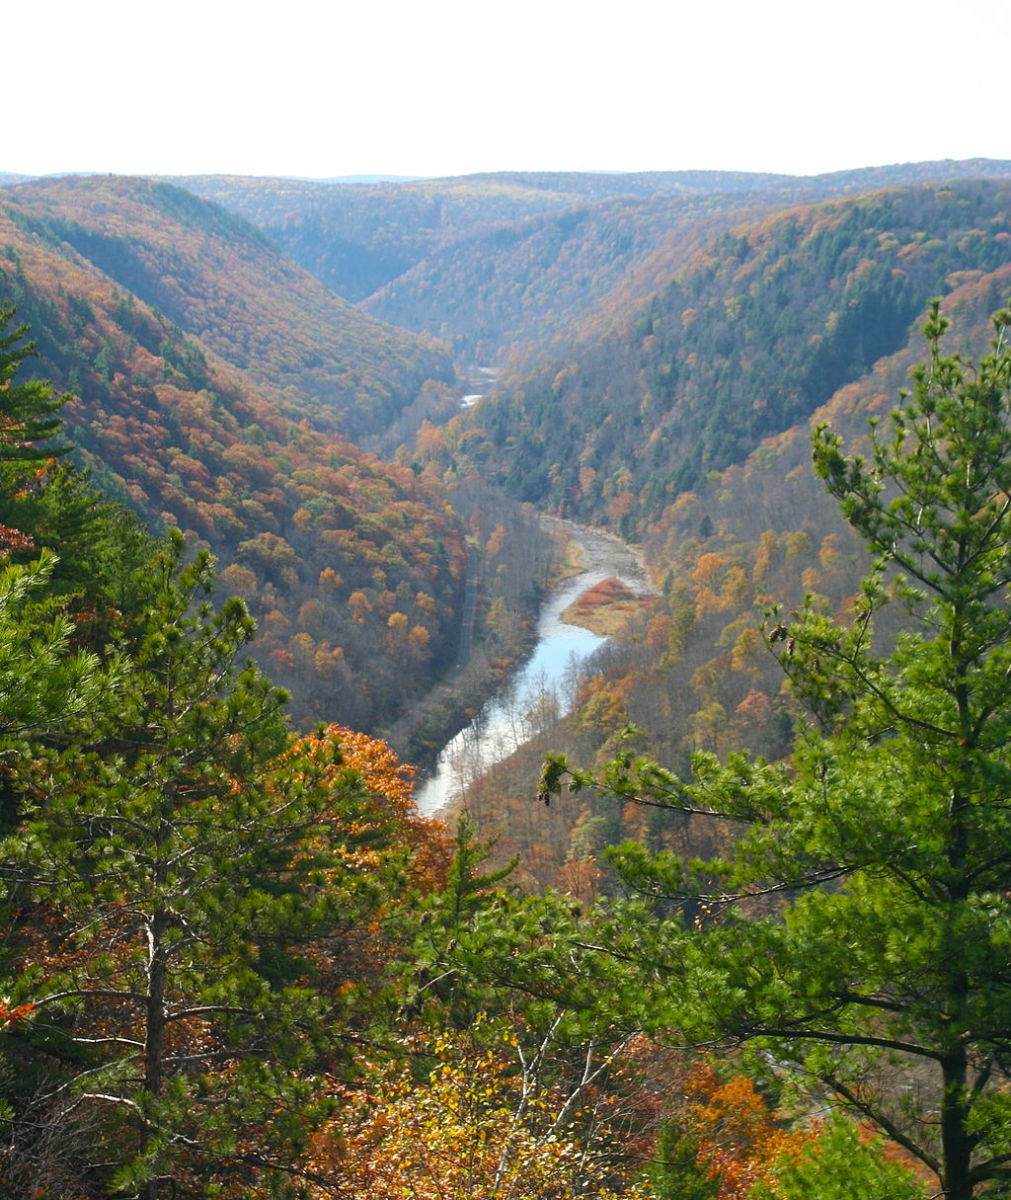 Pine Creek Gorge, the Grand Canyon of Pennsylvania in the fall